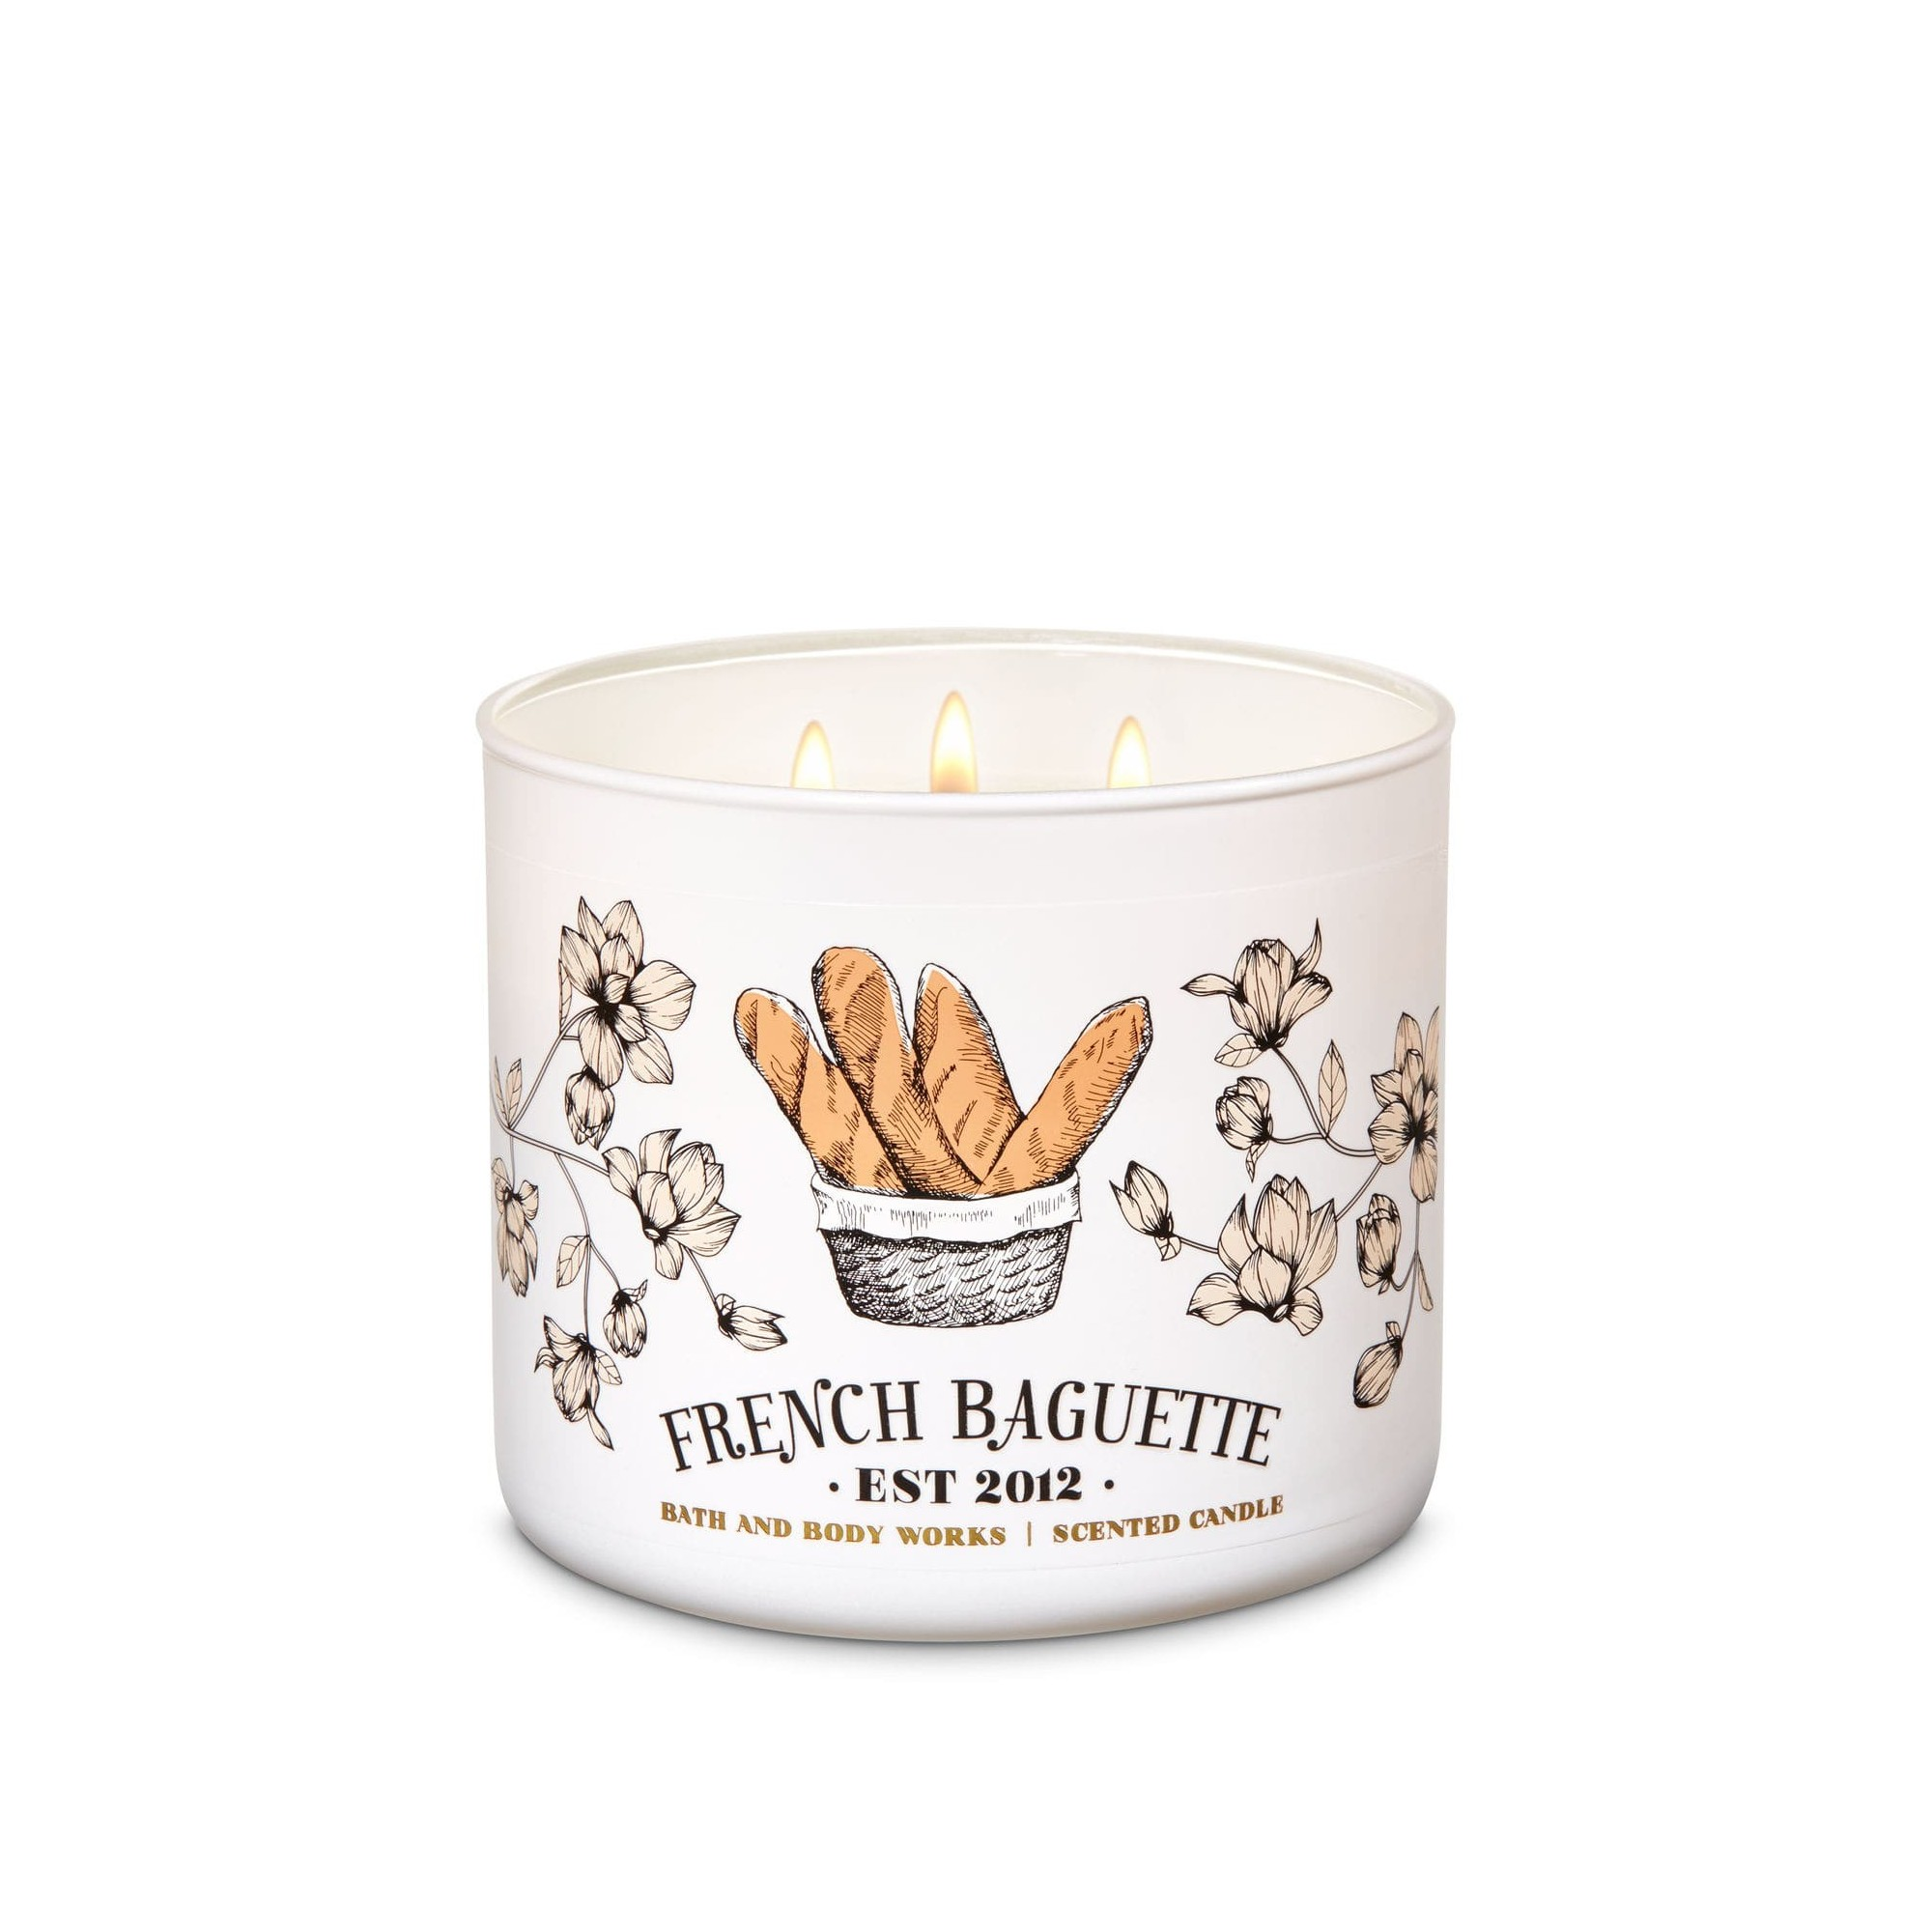 Bath & Body Works French Baguette 3 Wick Scented Candle